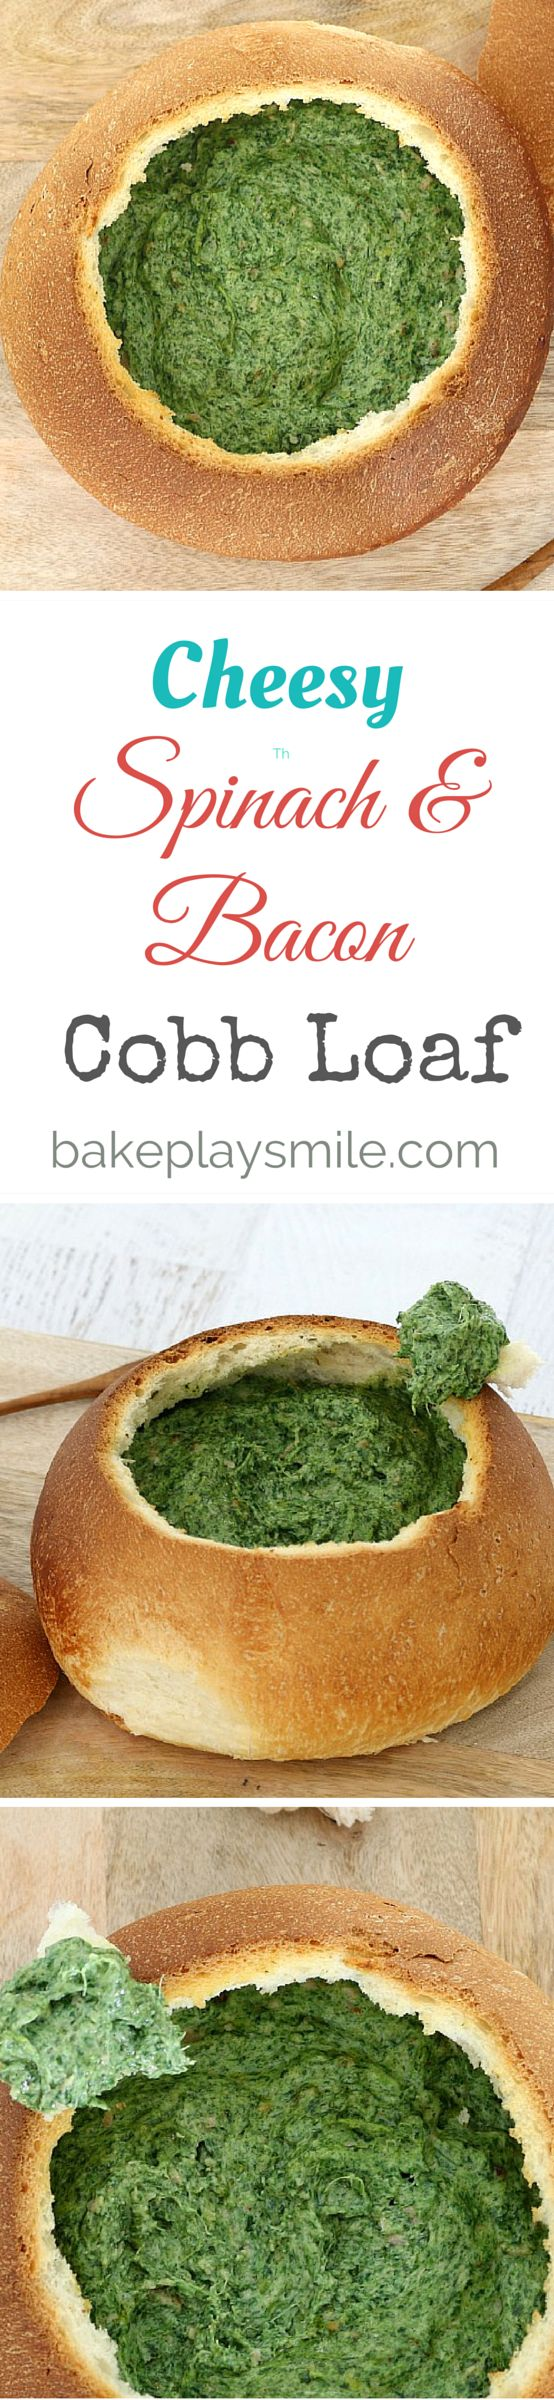 This is the BEST cobb loaf in the world!!! You can eat the WHOLE thing which means there's no dishes afterwards. This easy and cheesy spinach & bacon cobb loaf really is the perfect party food! #cobb #loaf #cheesy #bacon #spinach #easy #party #food